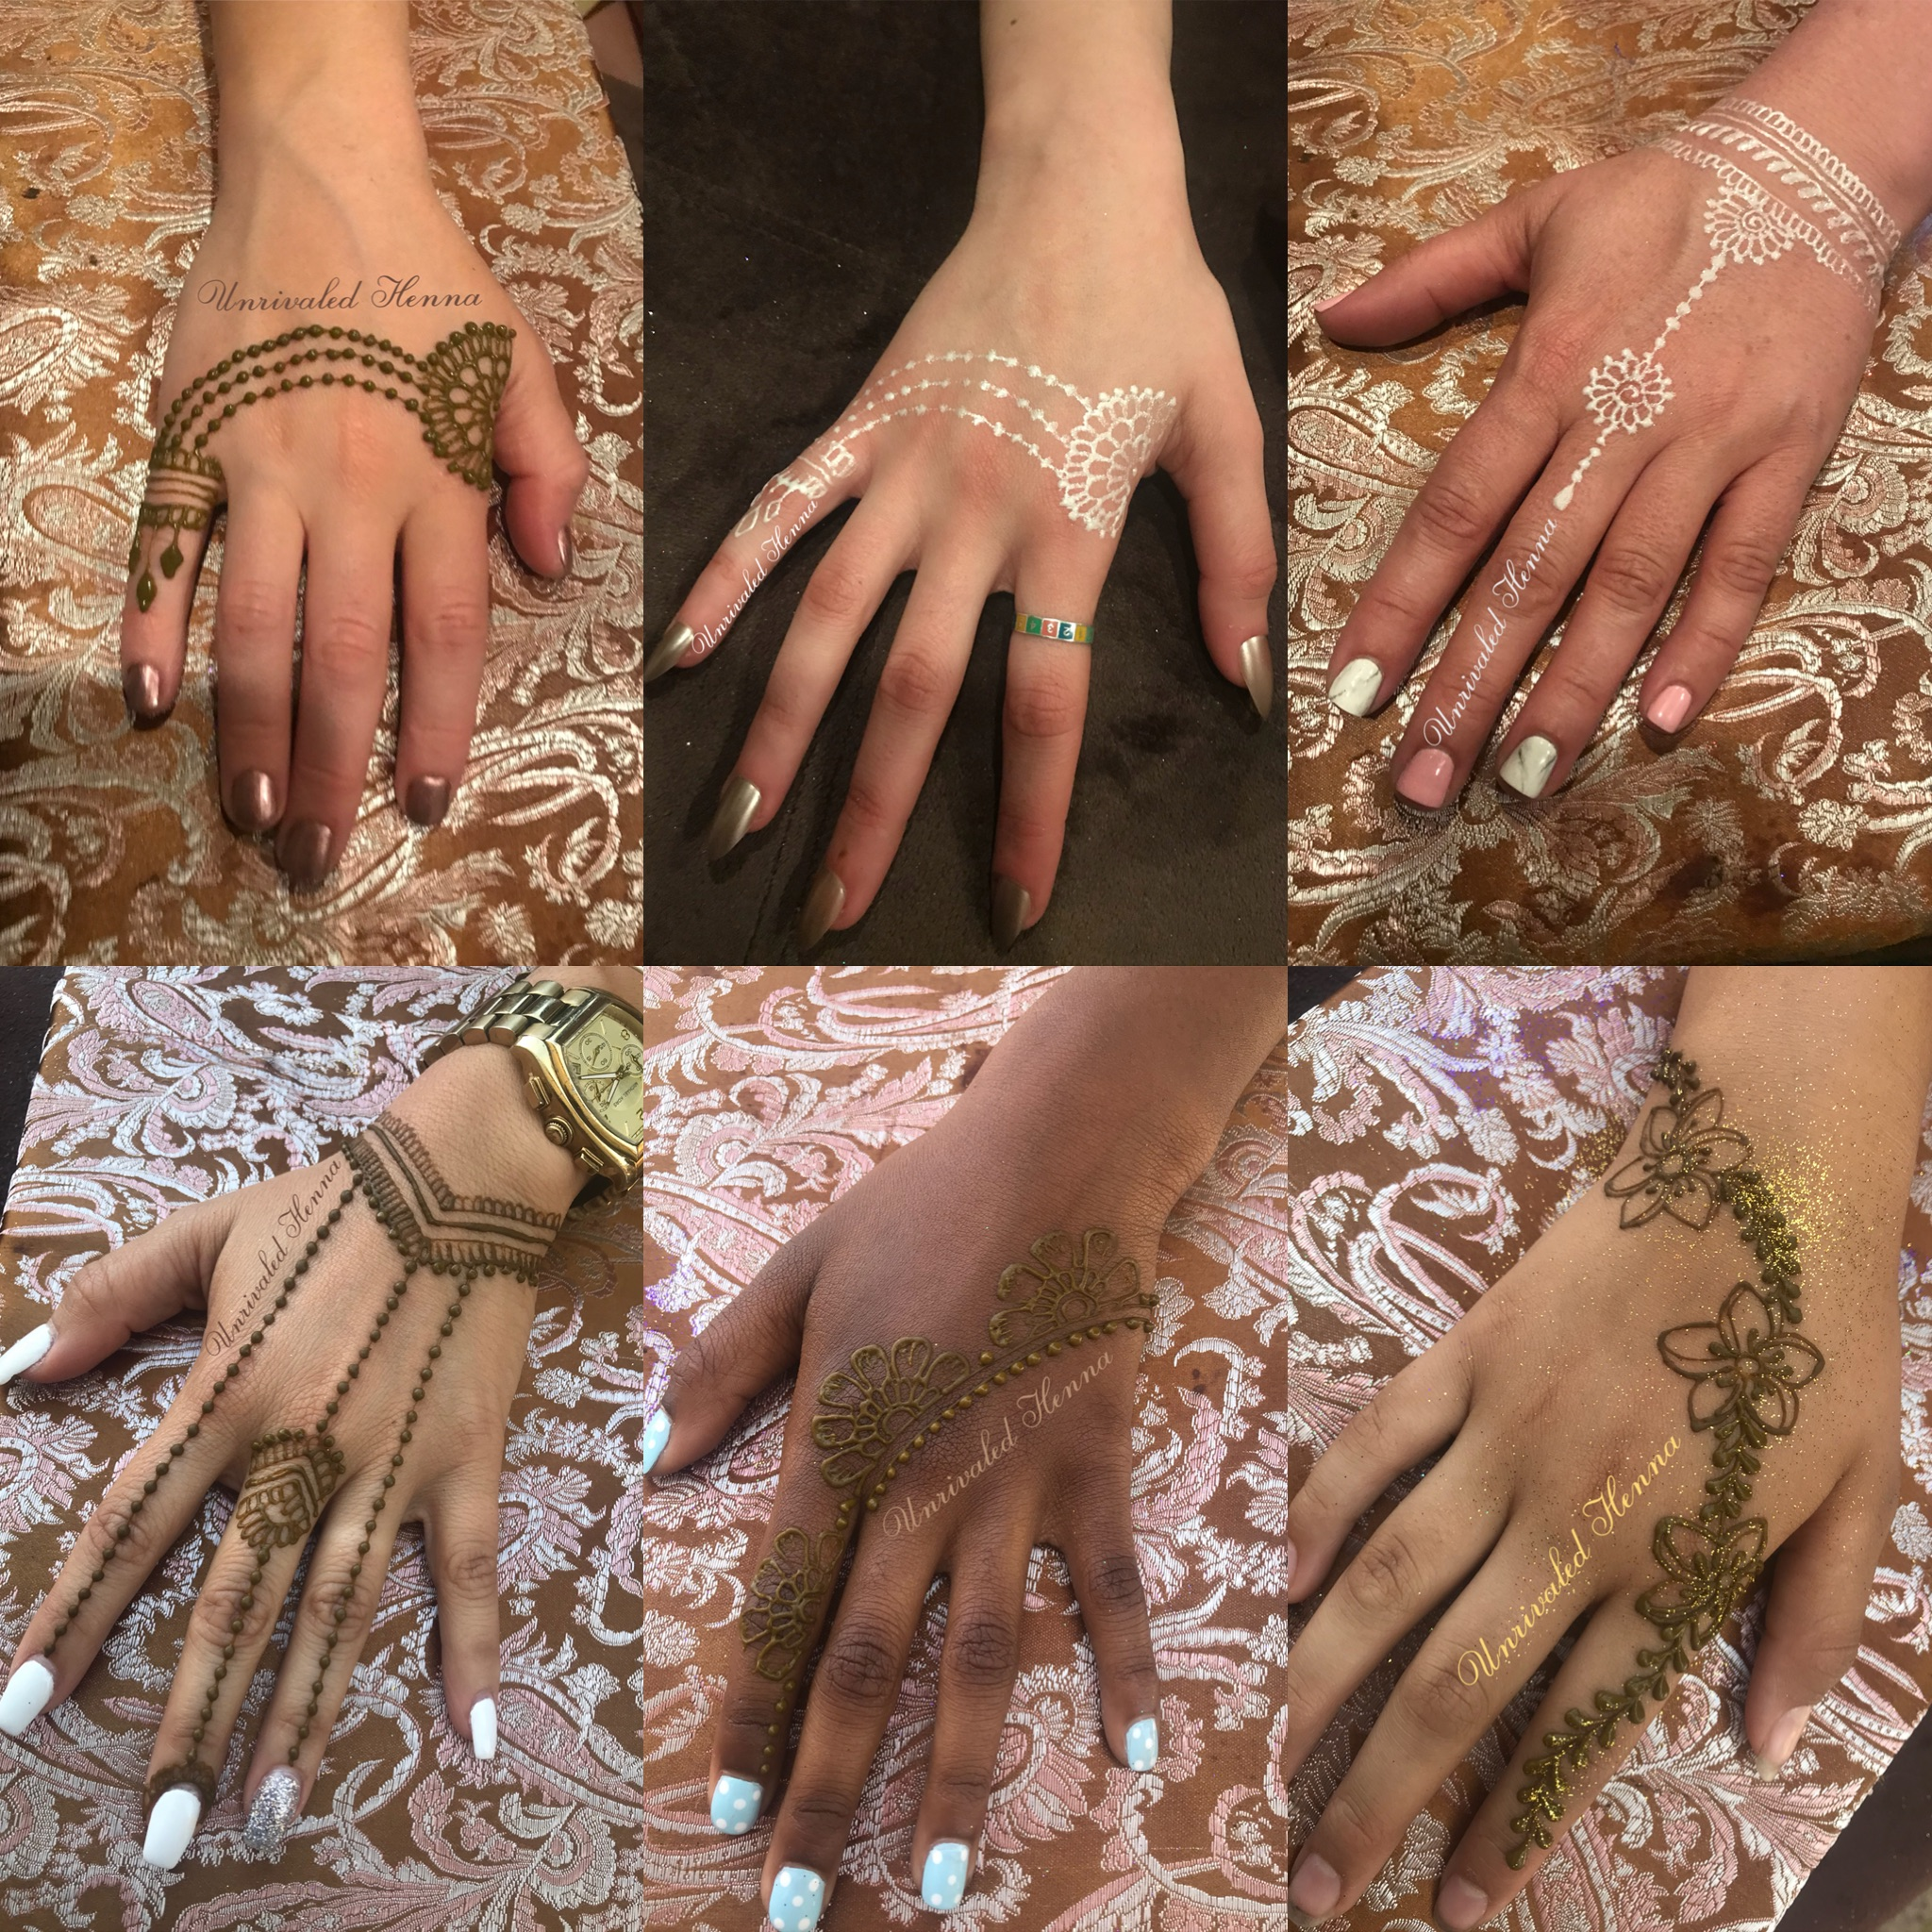 - Madiha was a sweetheart. Having her was the highlight of our party. Everyone loved their Henna. I would hire her again for sure. Thank you! - Clary (5/5/18)